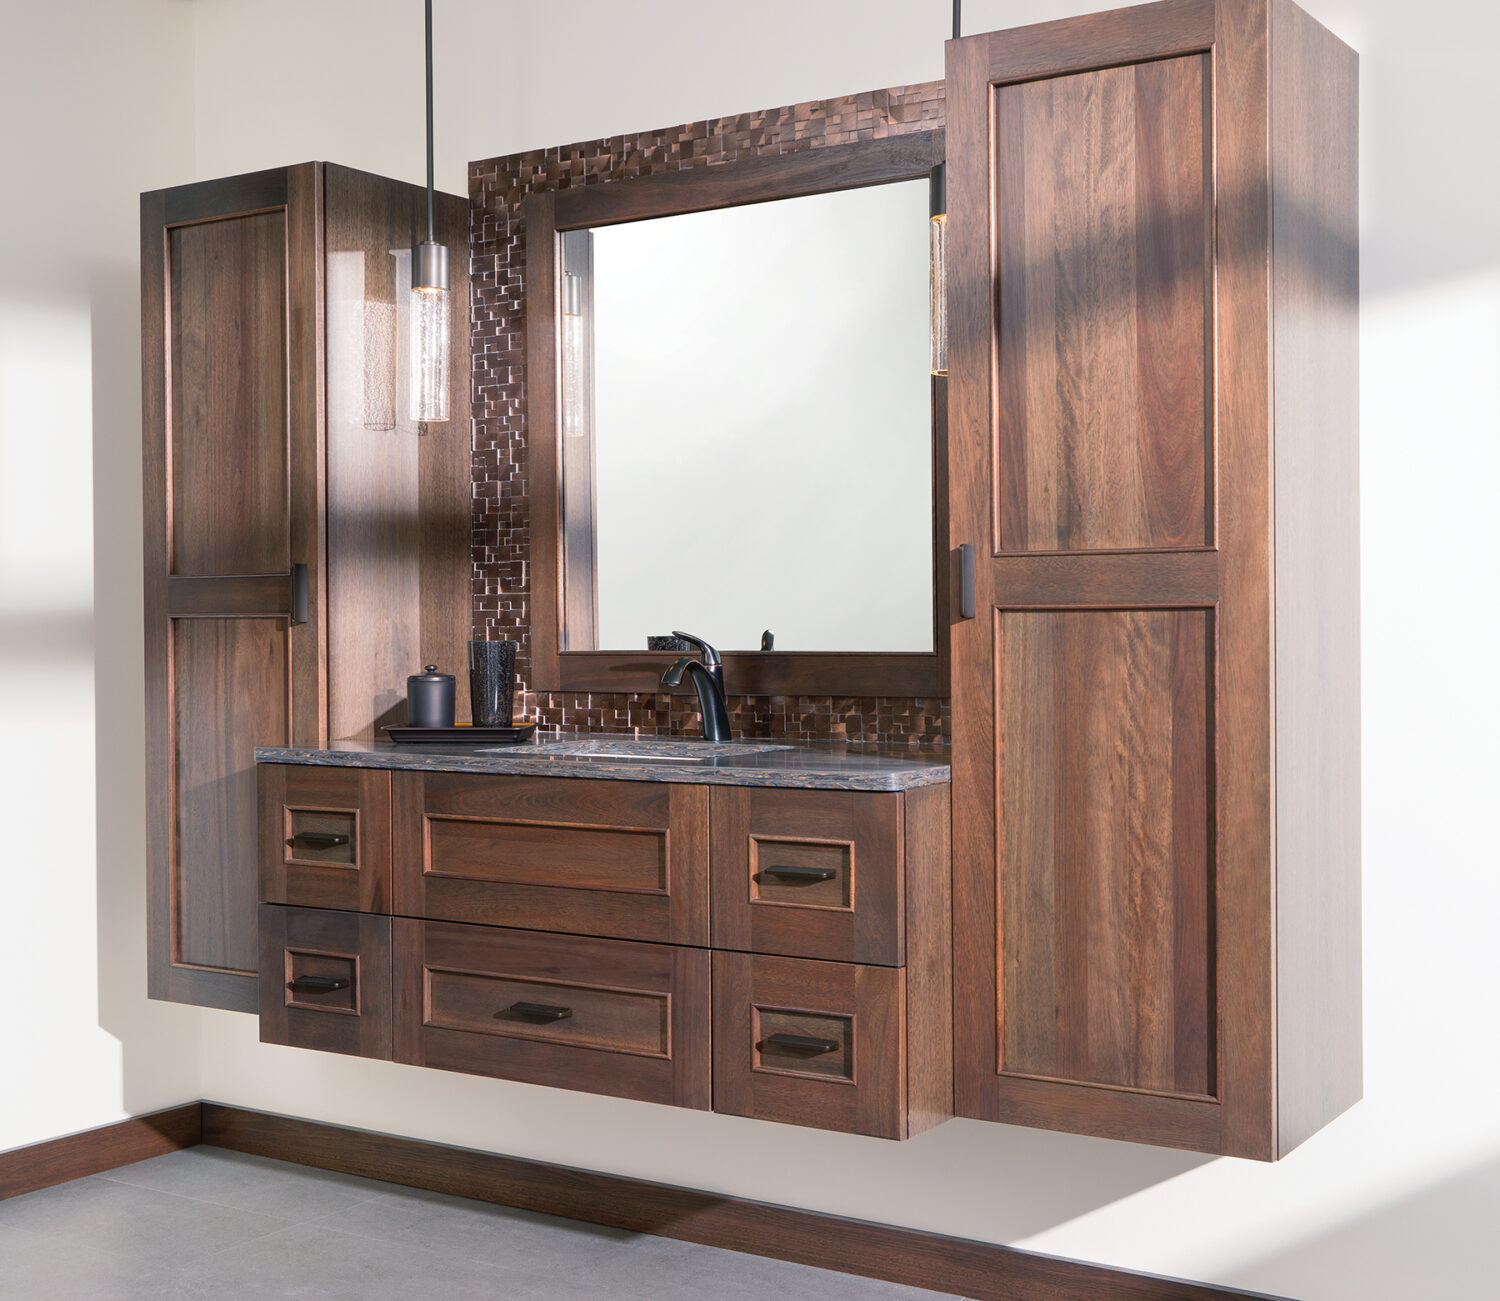 Dura Supreme's Floating Vanity Collection